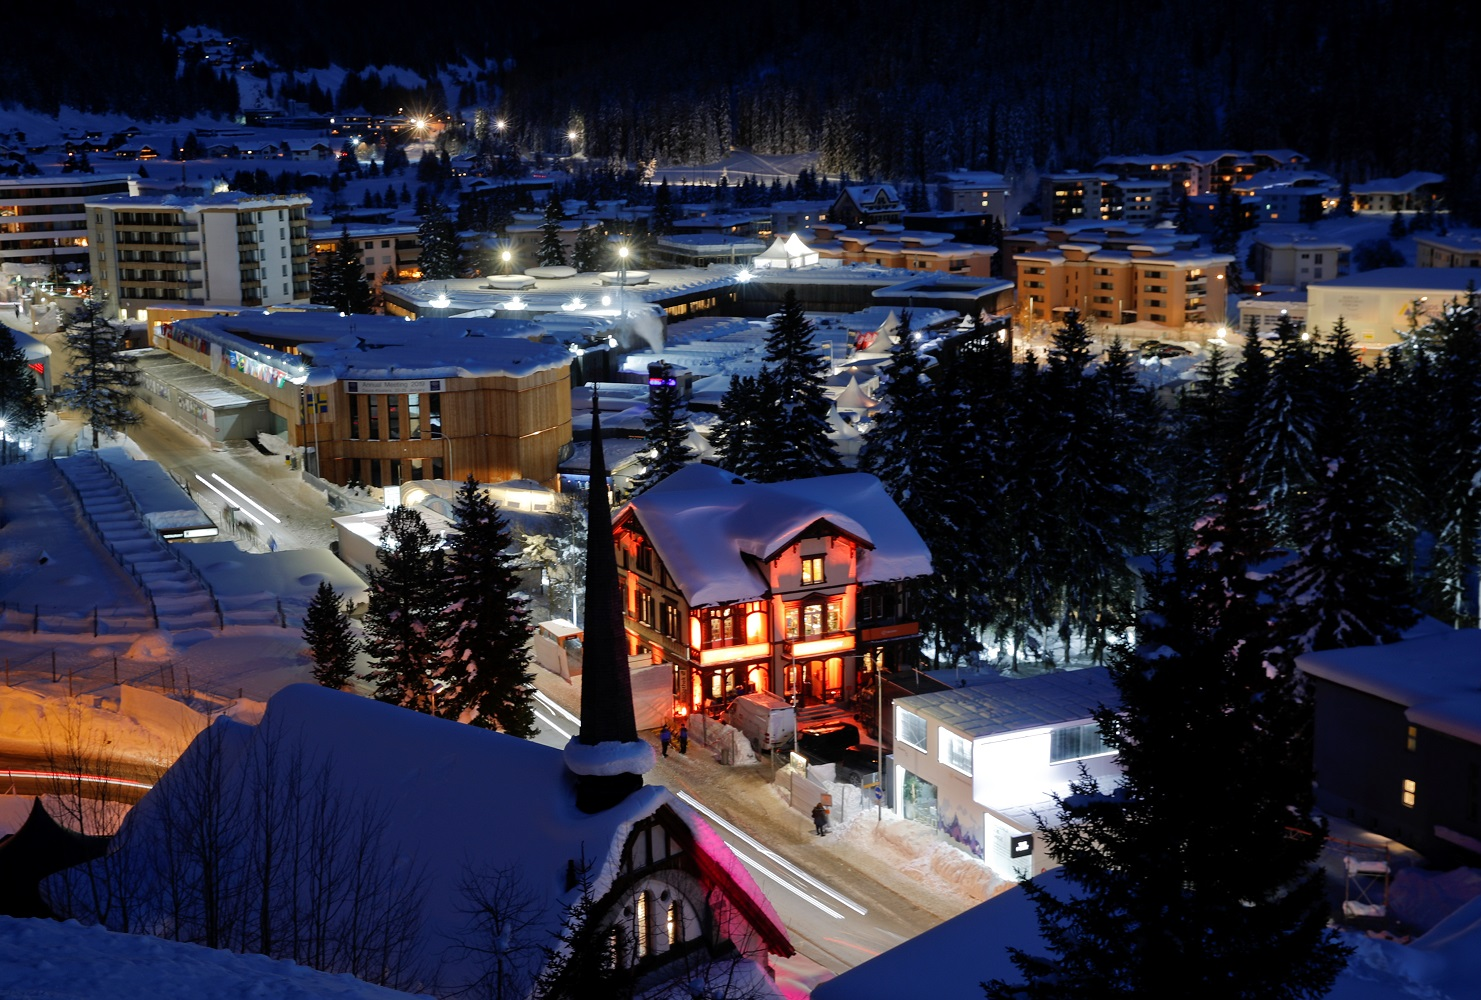 A night view shows a congress centre (L), the venue of the upcoming World Economic Forum (WEF) in the Swiss mountain resort of Davos, Switzerland, January 20, 2019. REUTERS/Arnd Wiegmann